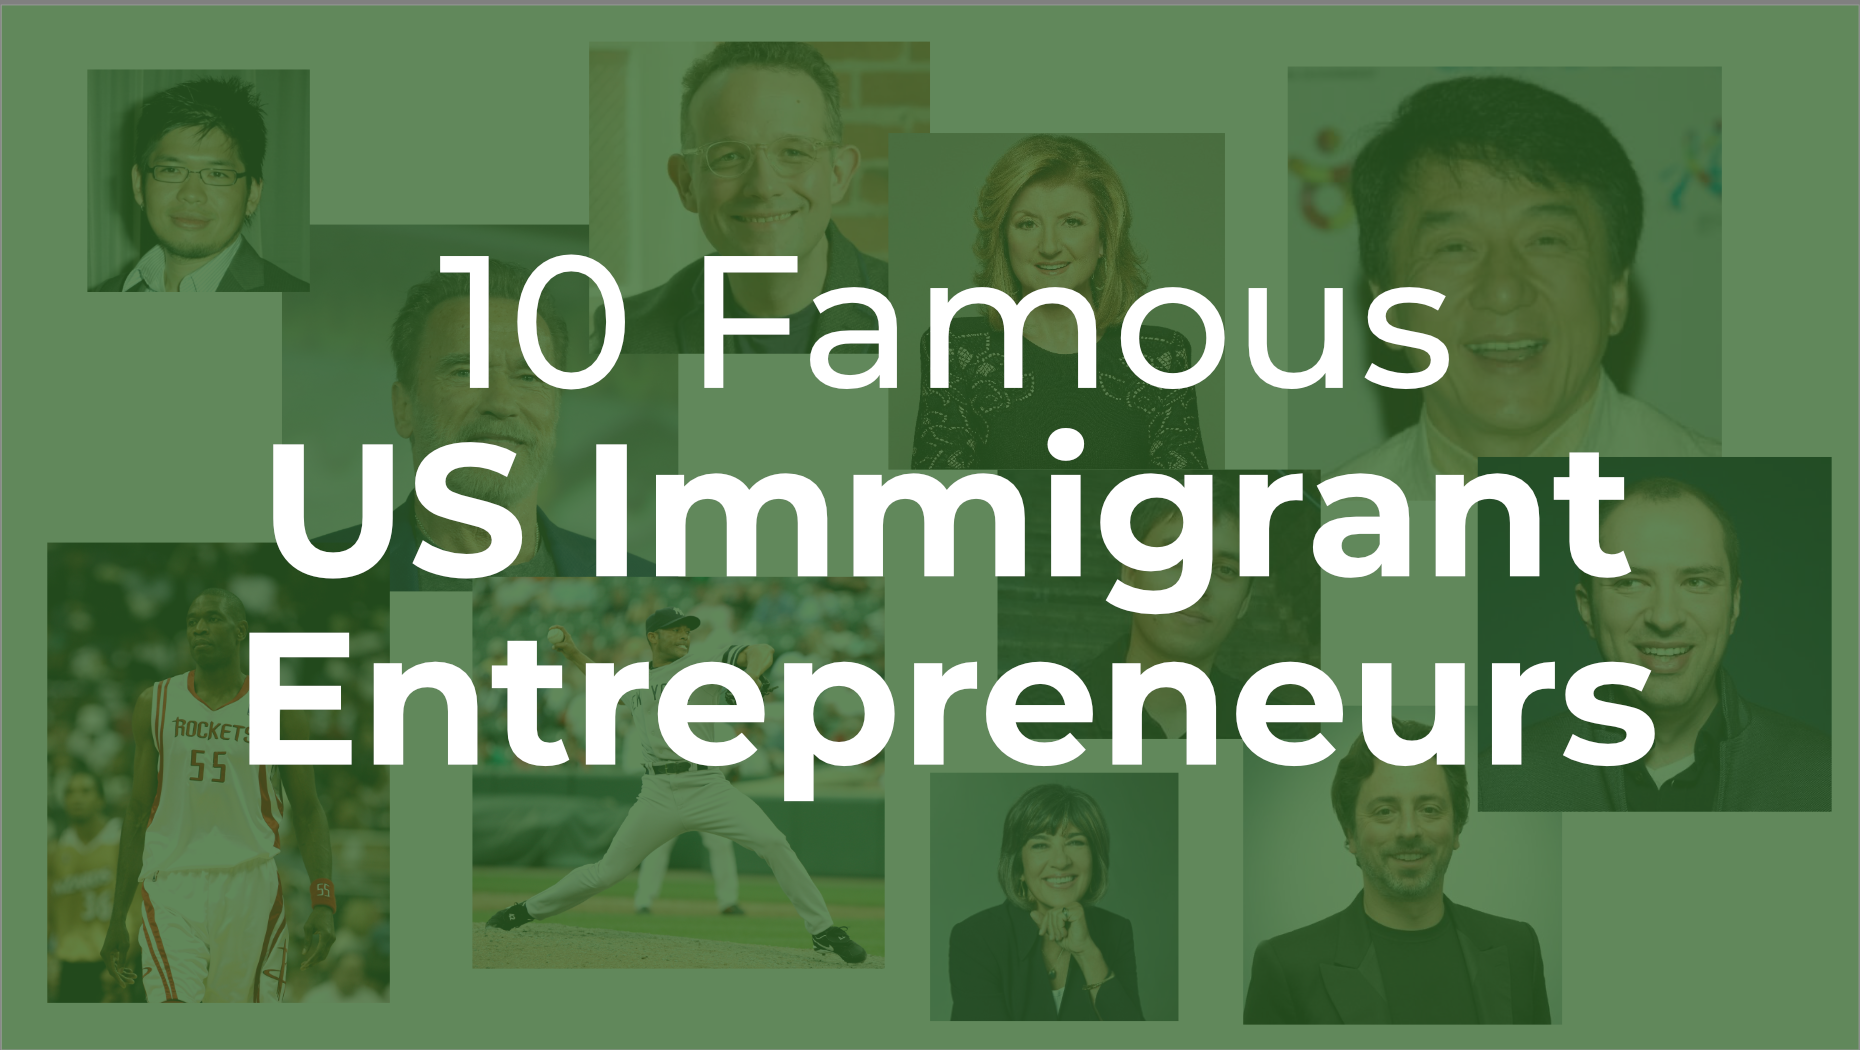 10 Famous US Immigrant Entrepreneurs